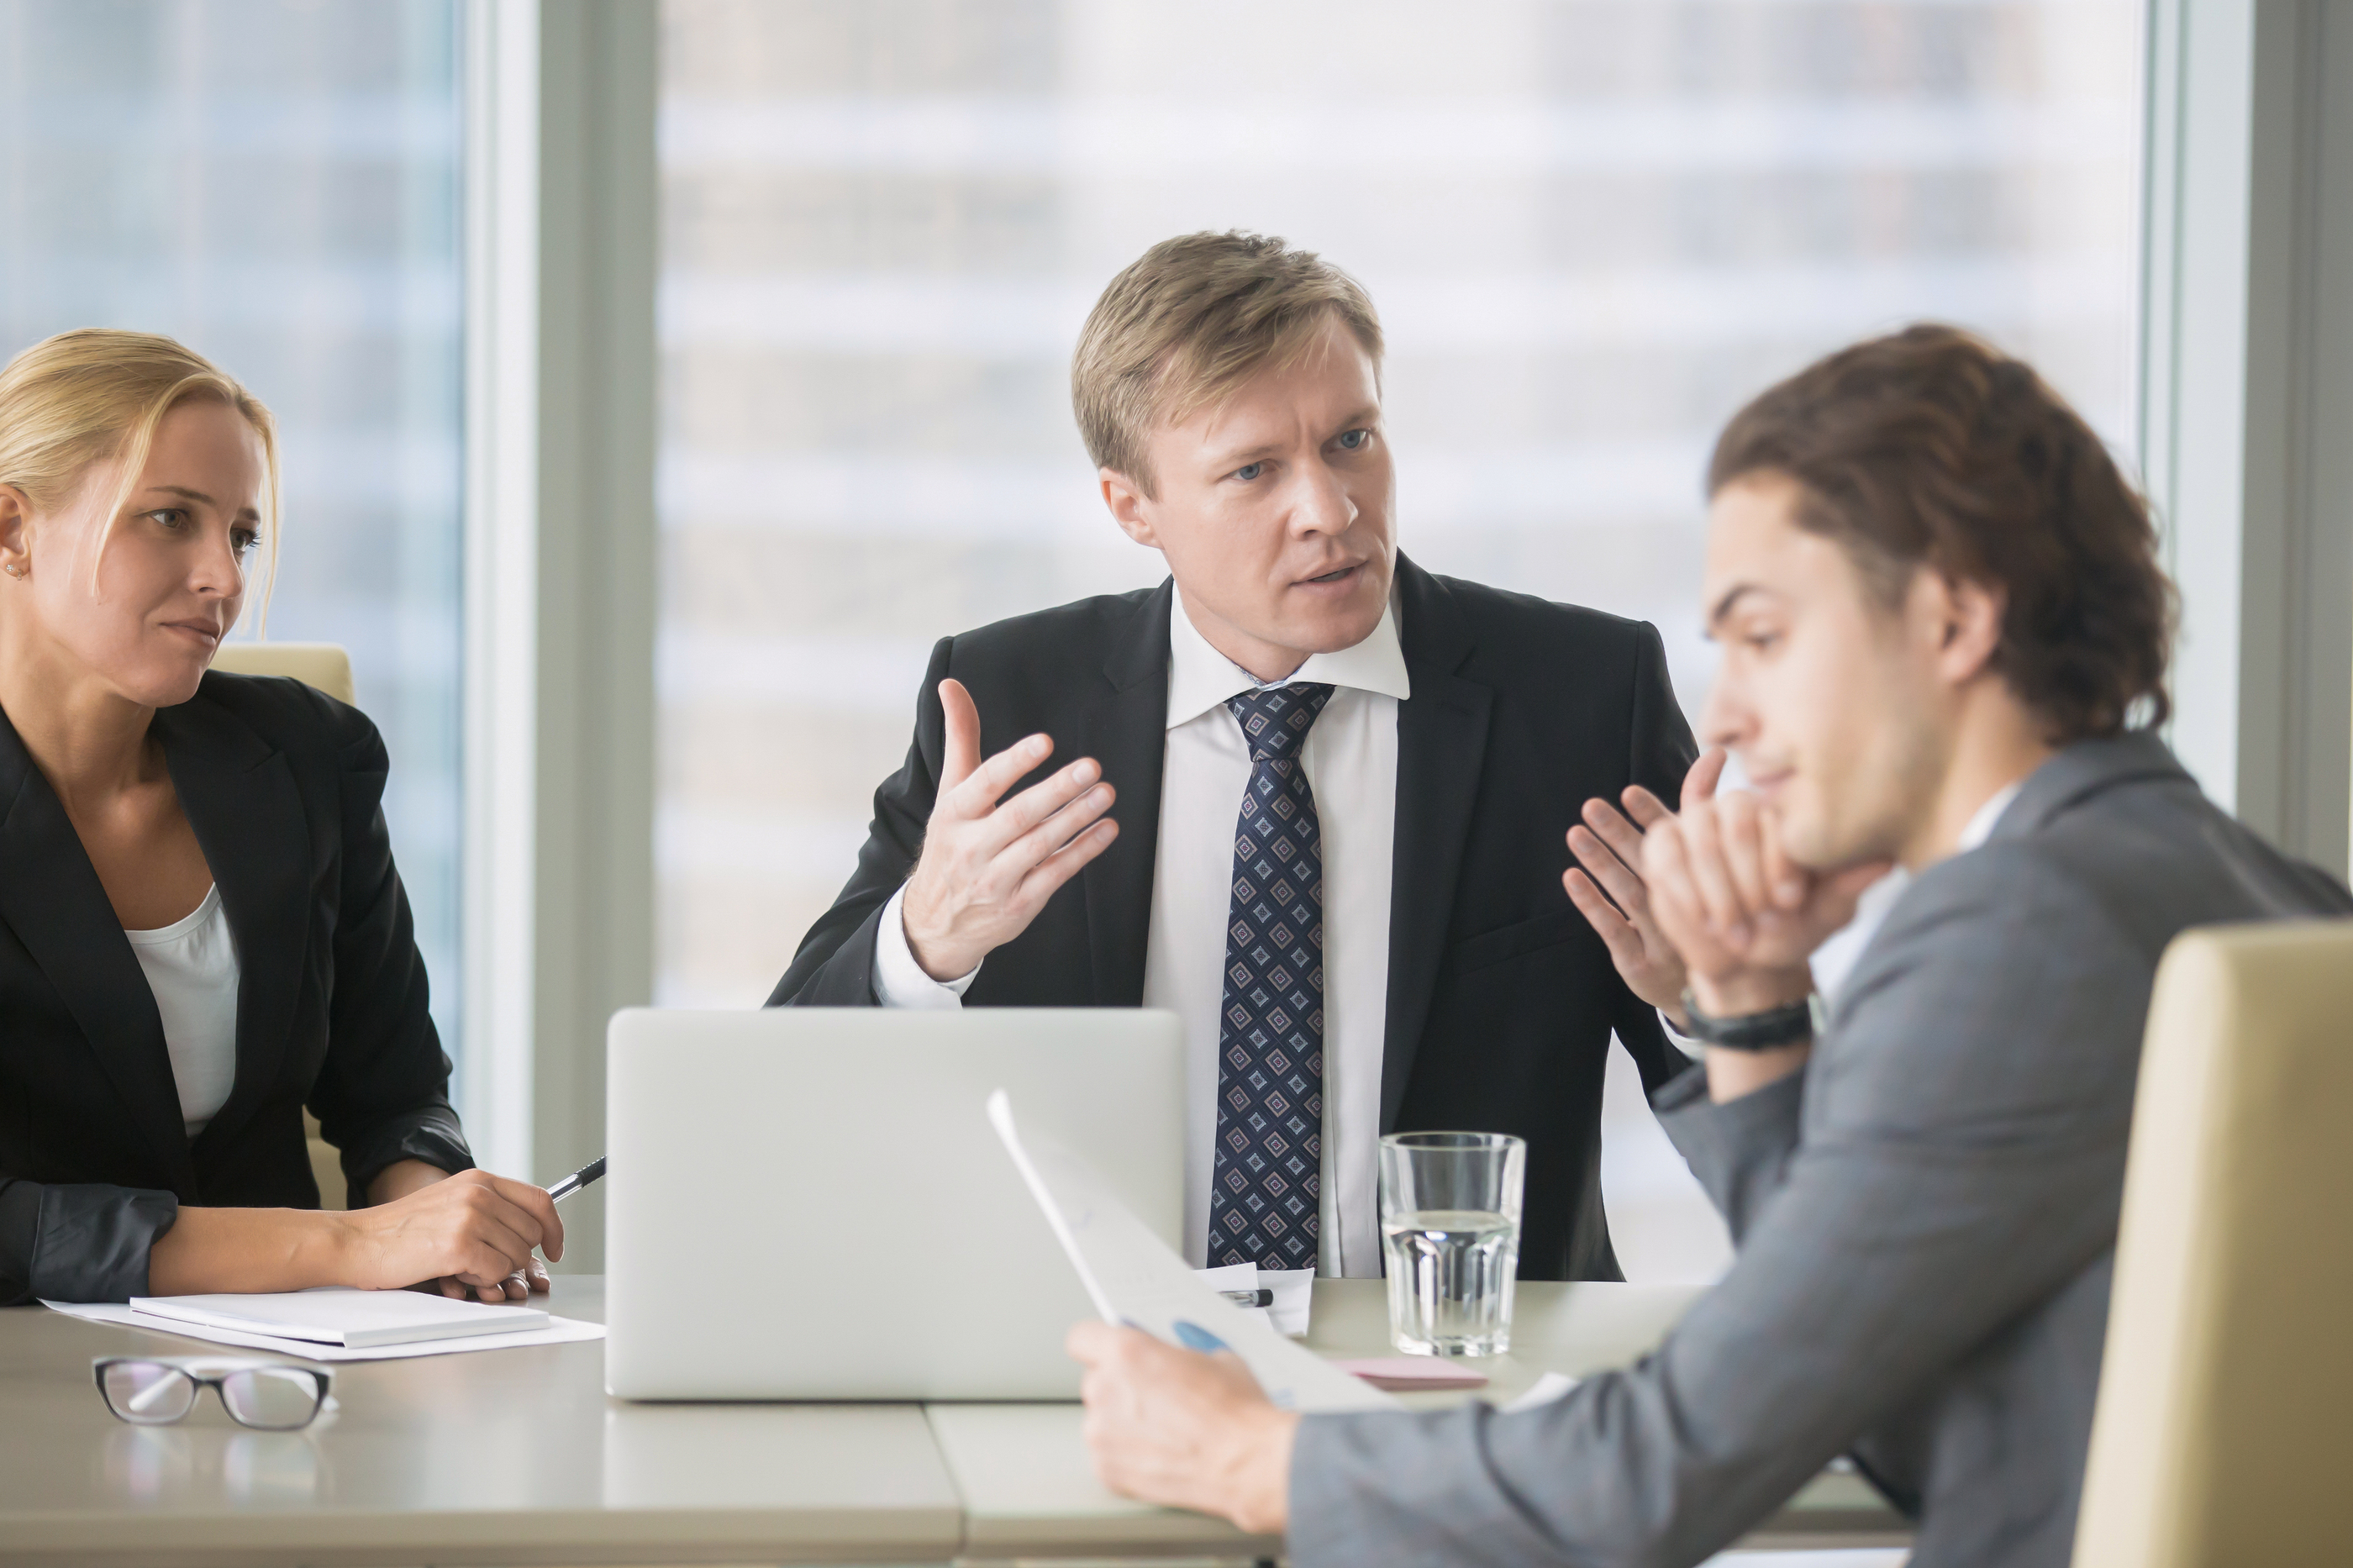 Want People to Try Harder on Work Teams? Focus On These 3 Perceptions